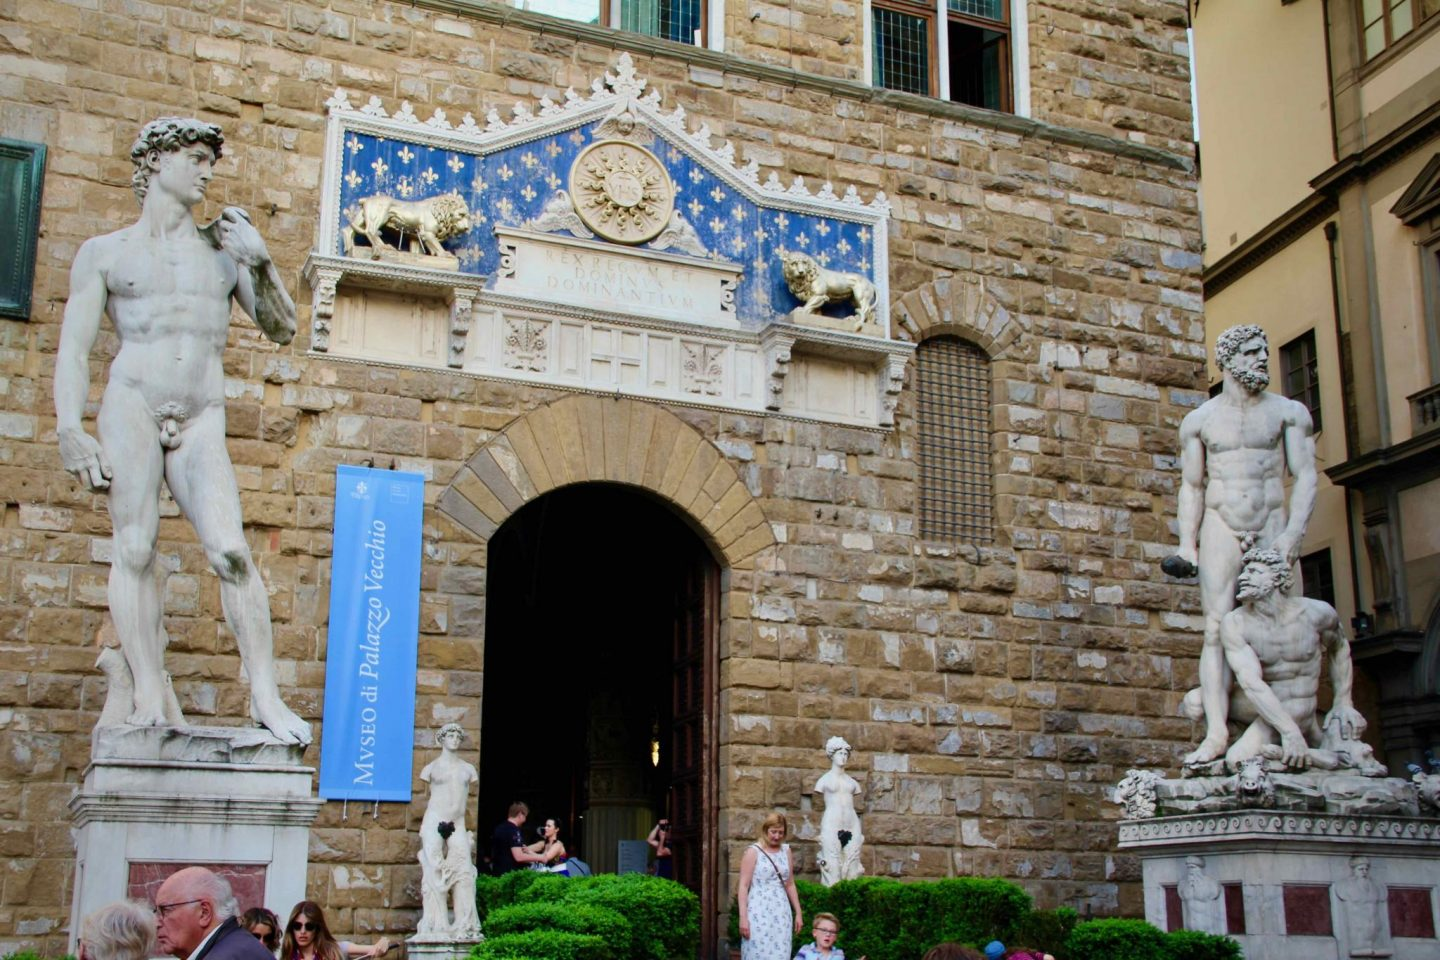 Palazzo Vecchio ... Florence Travel Guide ... The Spectacular Adventurer